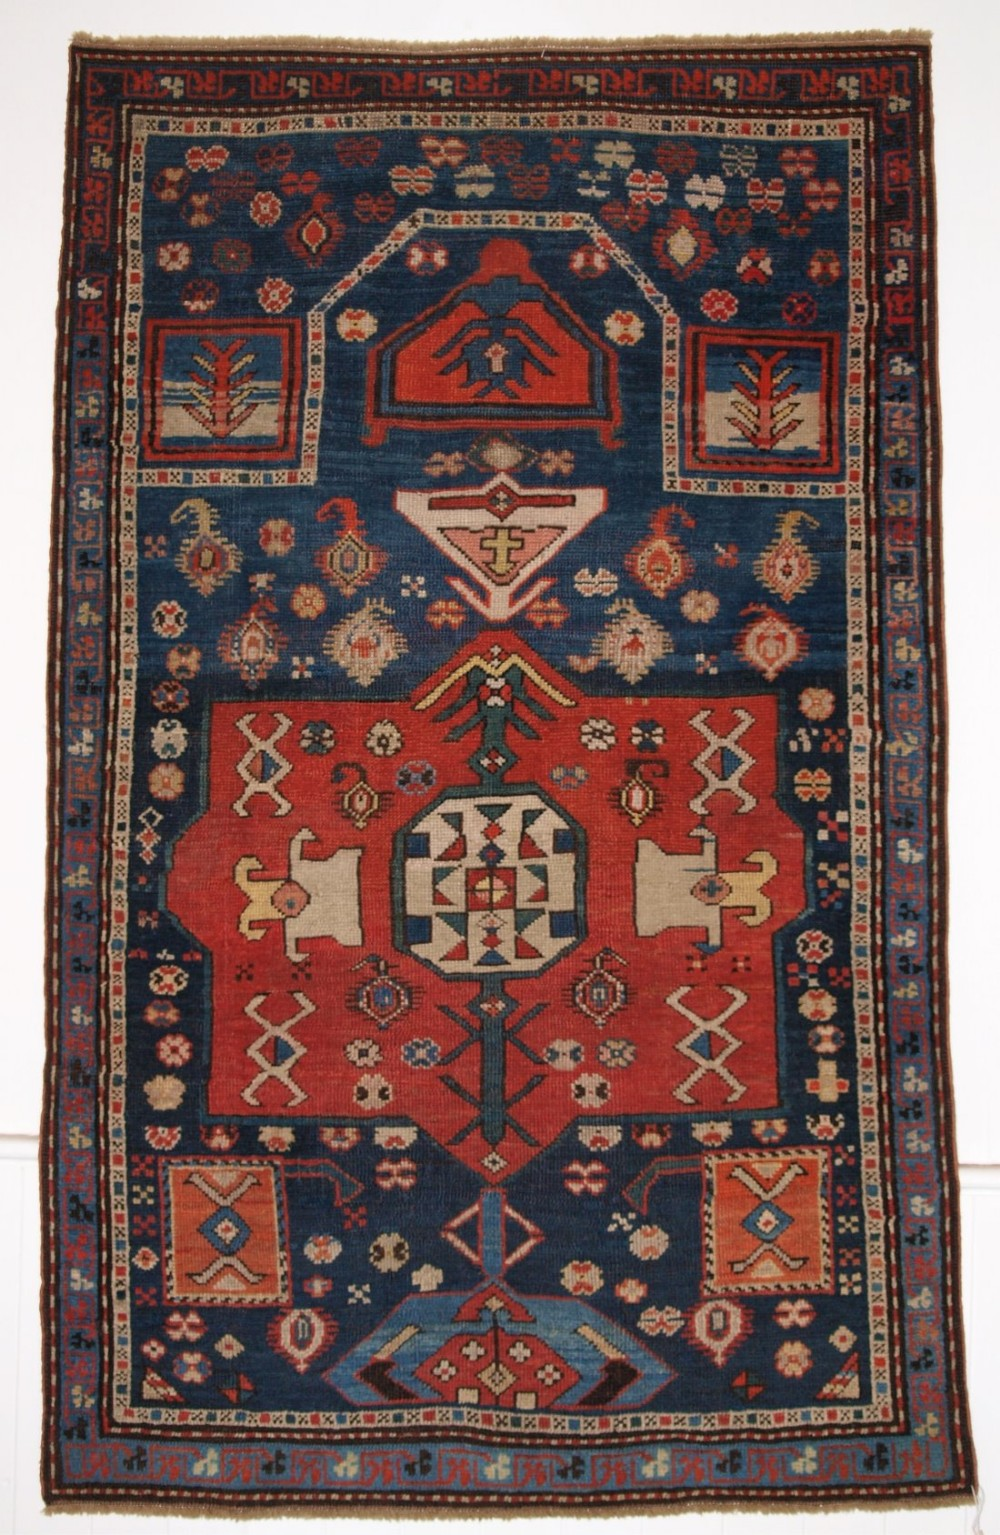 antique caucasian prayer rug karabagh region of scarce design late 19th century